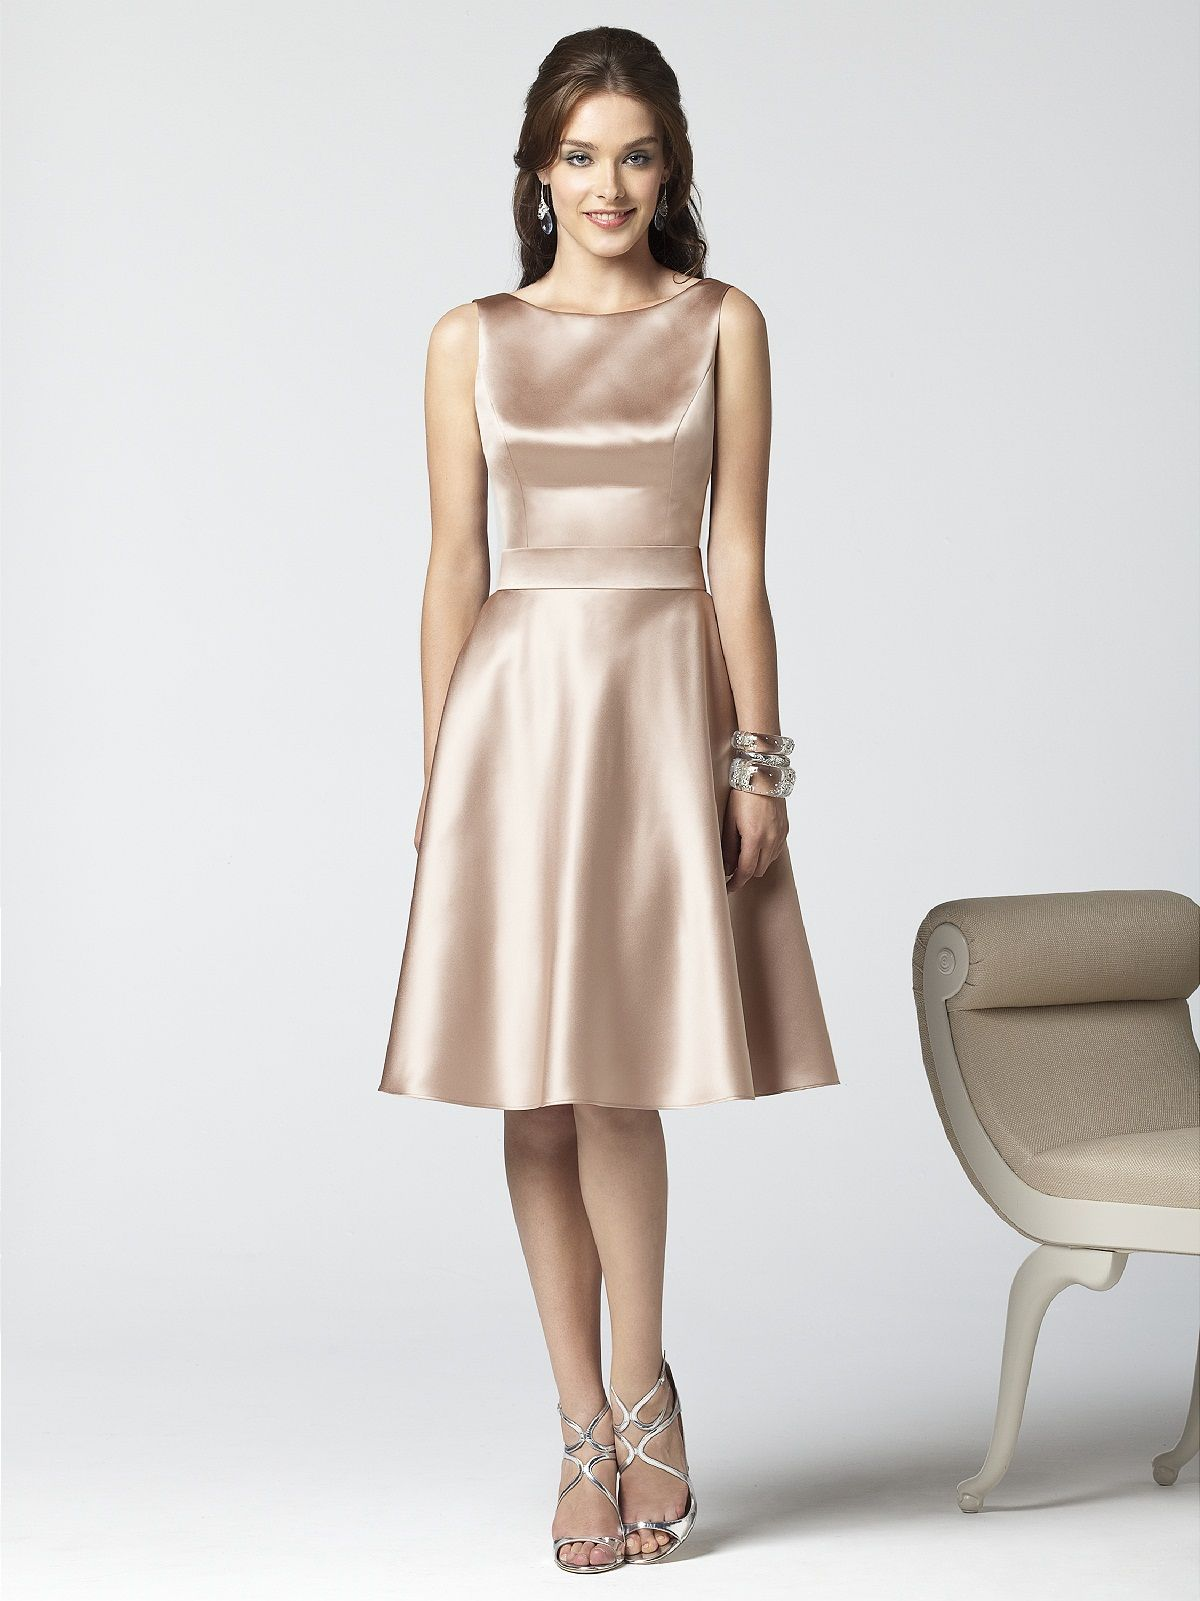 Courthouse wedding dresses under $100  Dessy Collection Style   Captions Matte satin and Satin